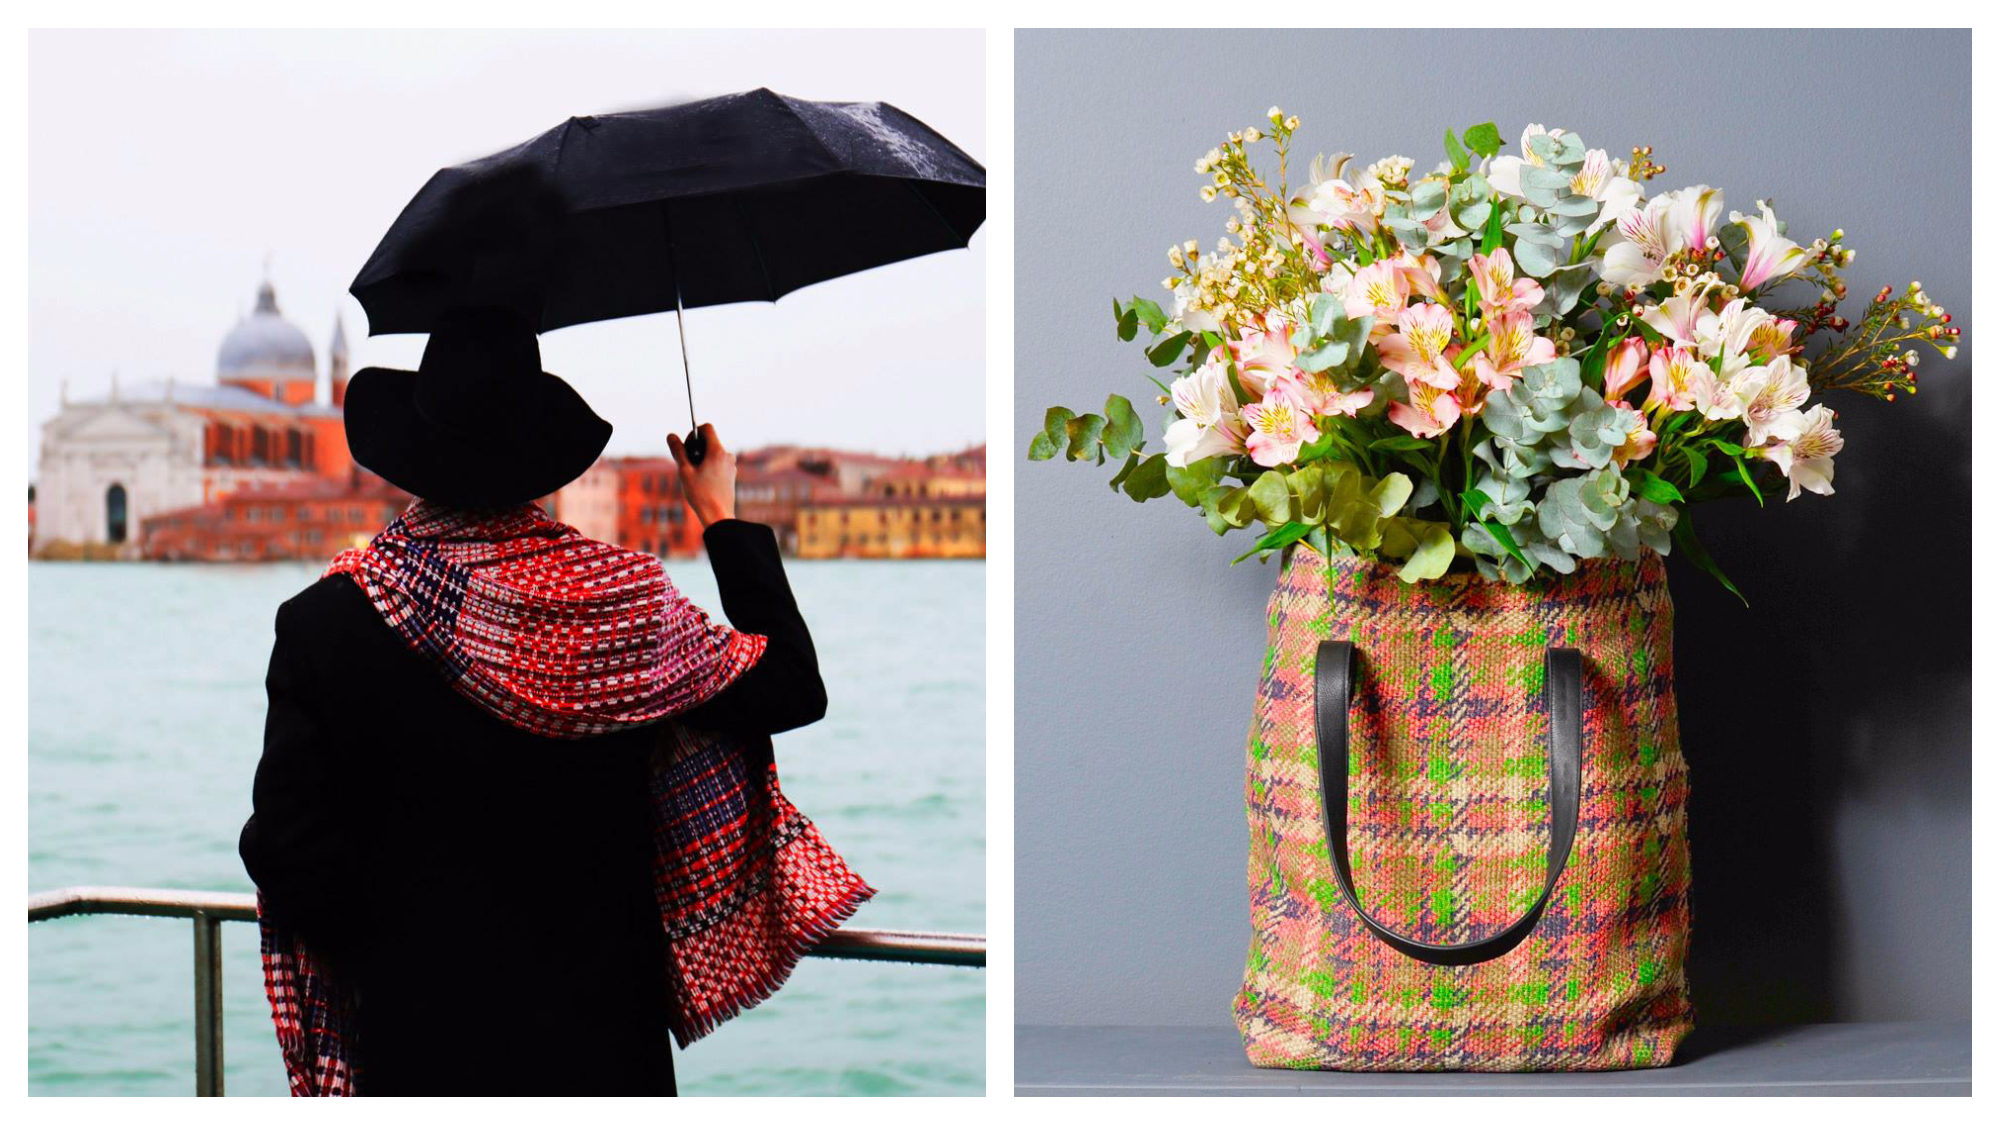 Accessories by French brand EPICE like a colorful red scarf worn by a woman in black standing on the canals of Venice (left) and tartan handbag with a bun of flowers inside it (right).